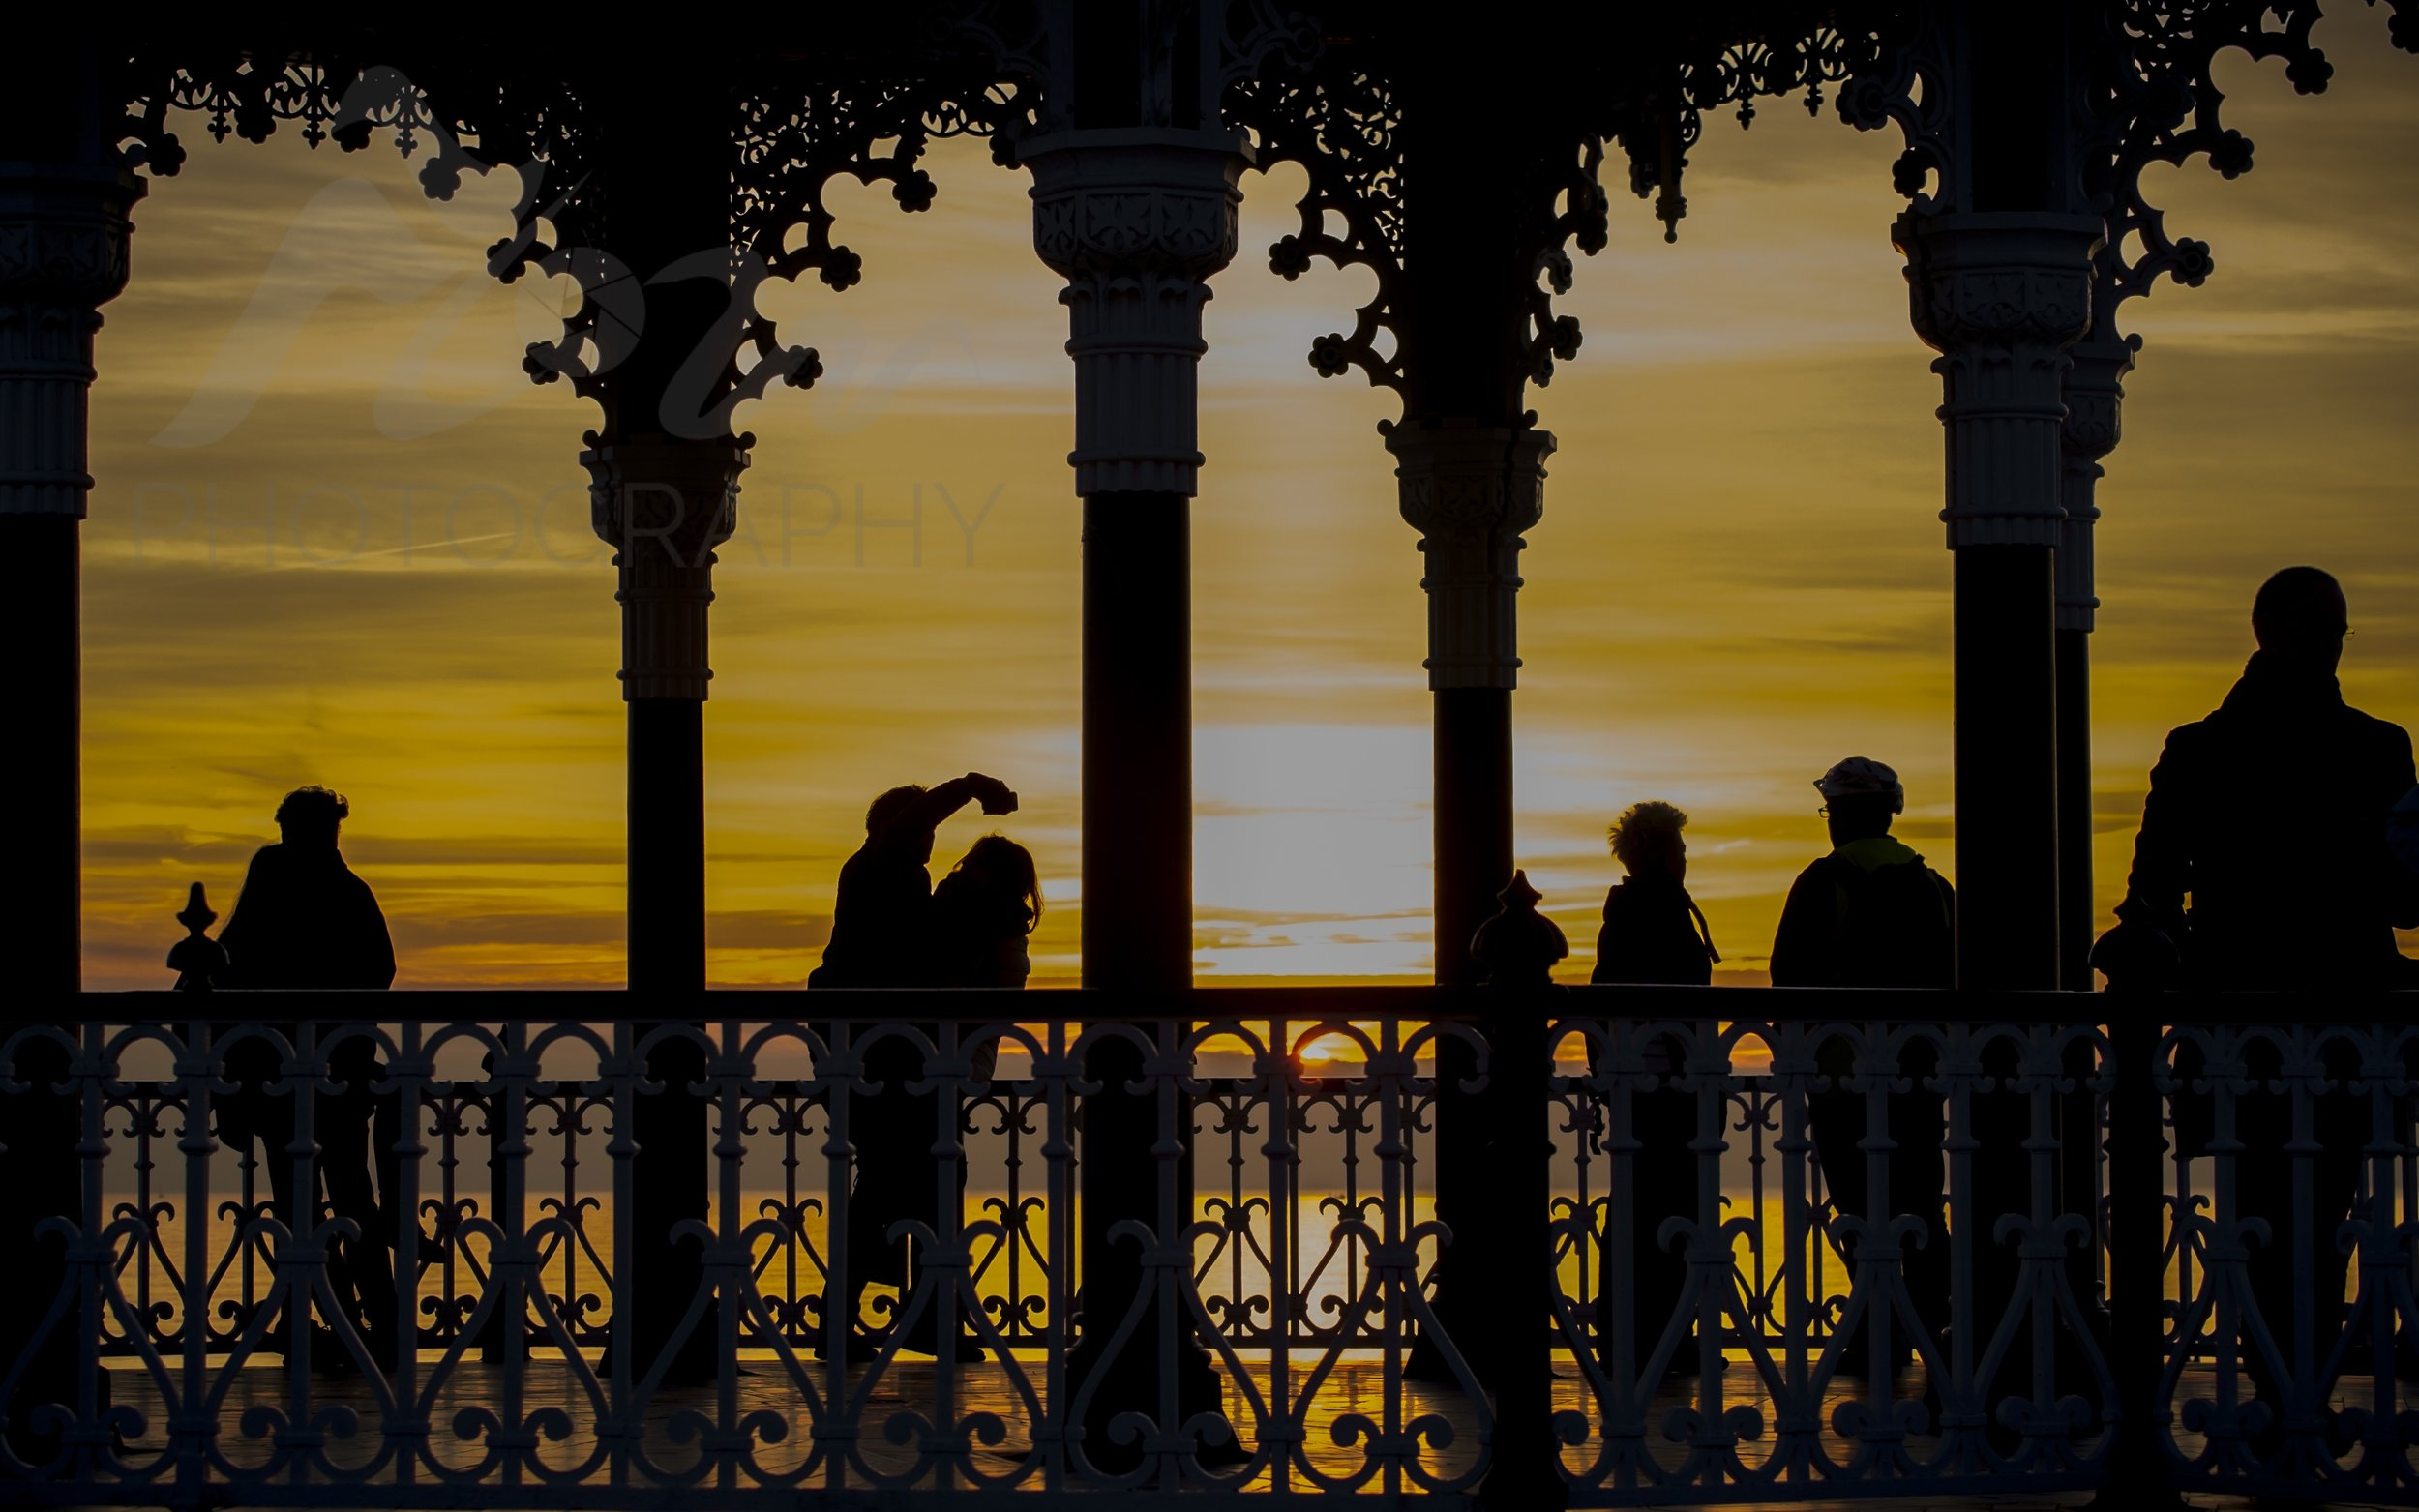 Sunset Selfies   The sun goes down on Brighton's Bandstand